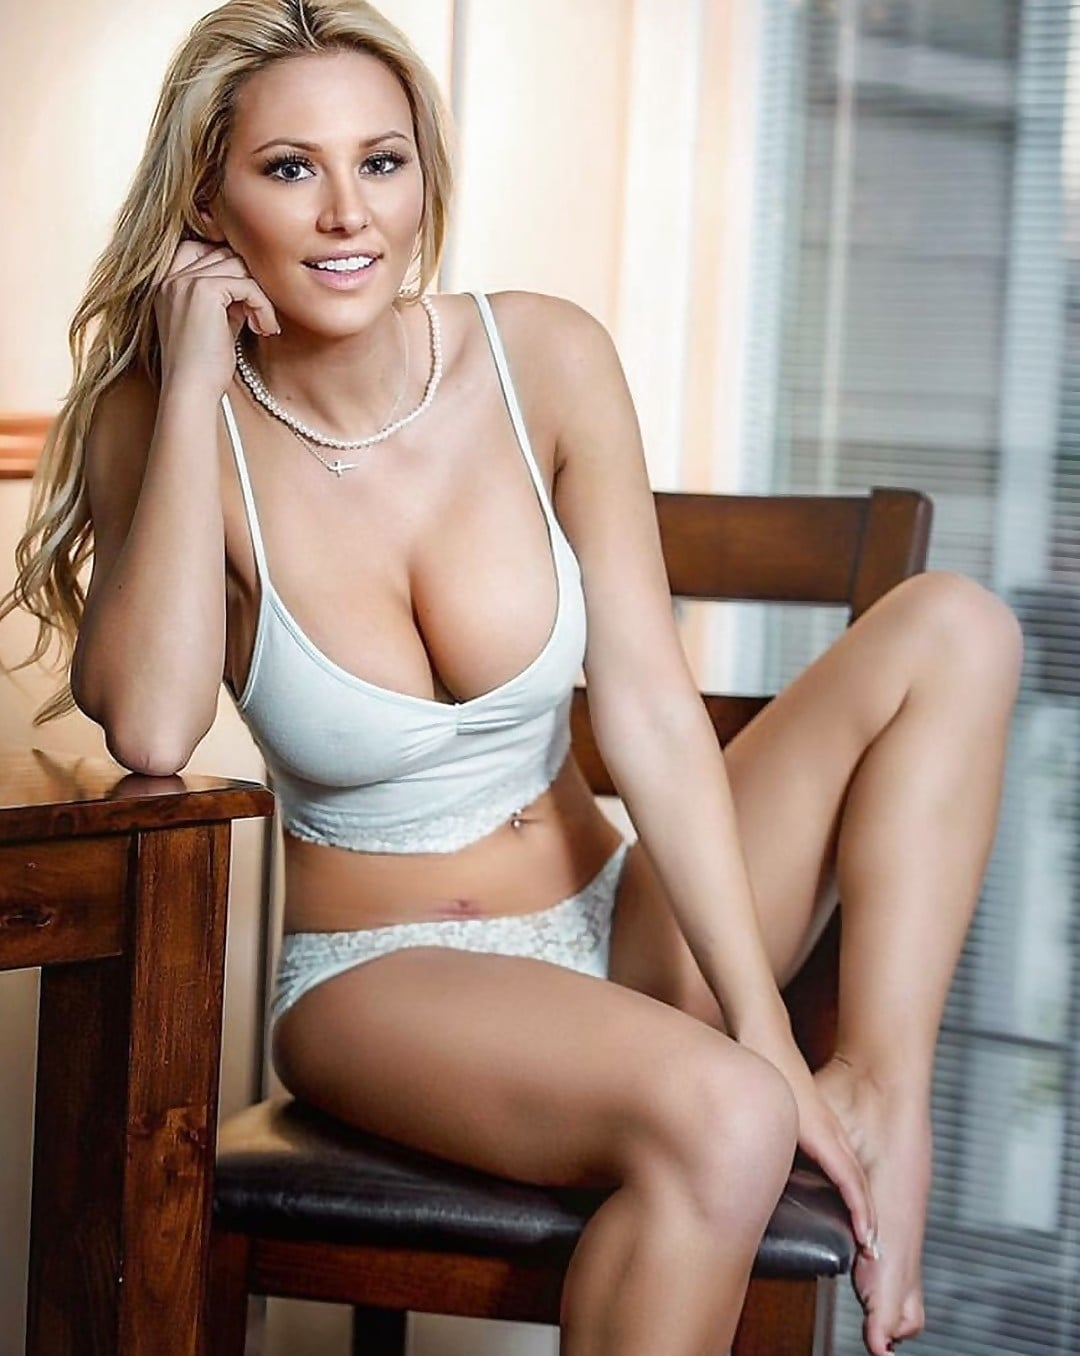 Fotos Kindly Myers nudes (99 foto and video), Topless, Sideboobs, Twitter, bra 2017